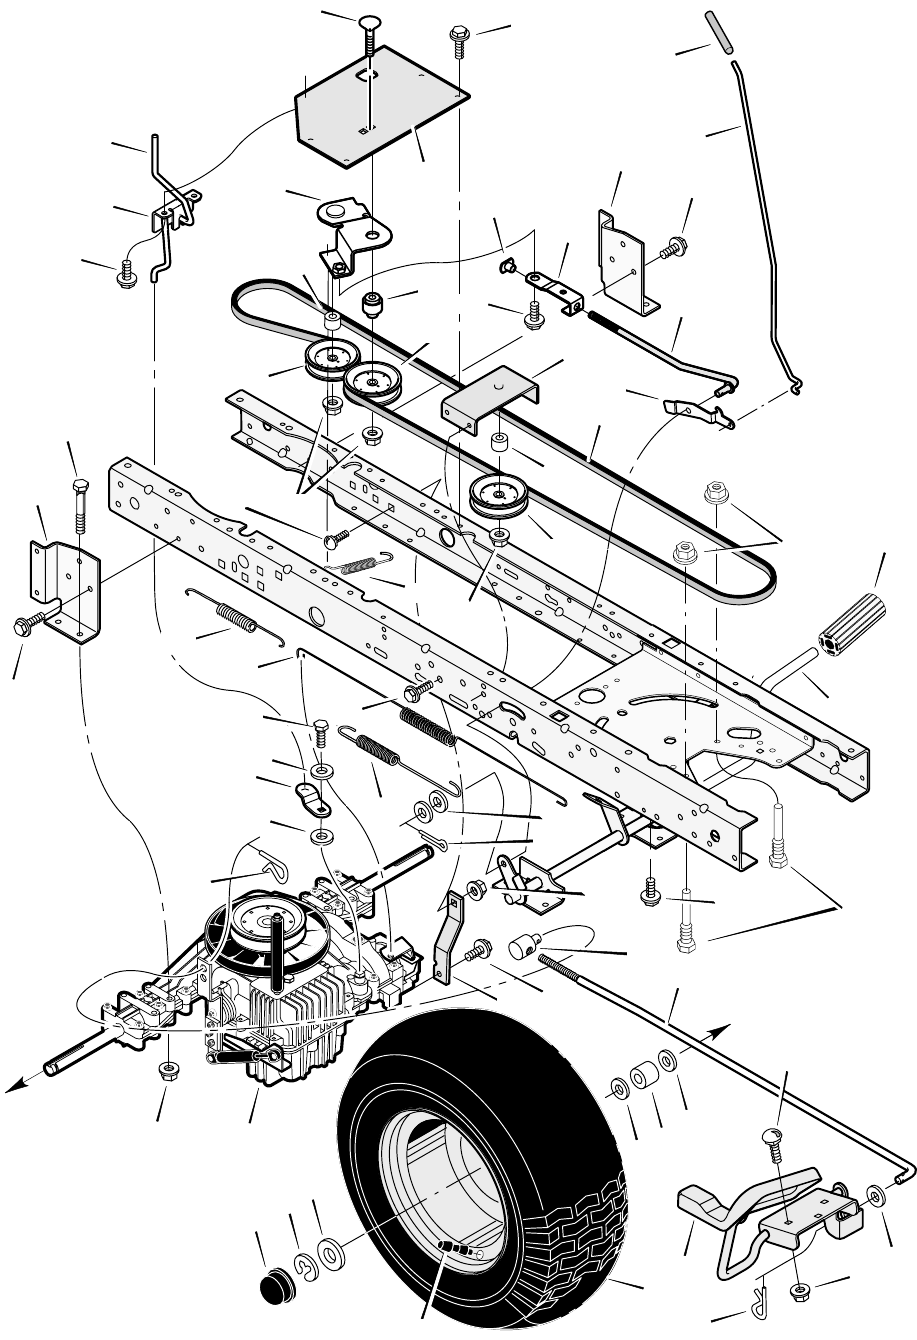 Page 38 of Murray Lawn Mower 425620x92B User Guide